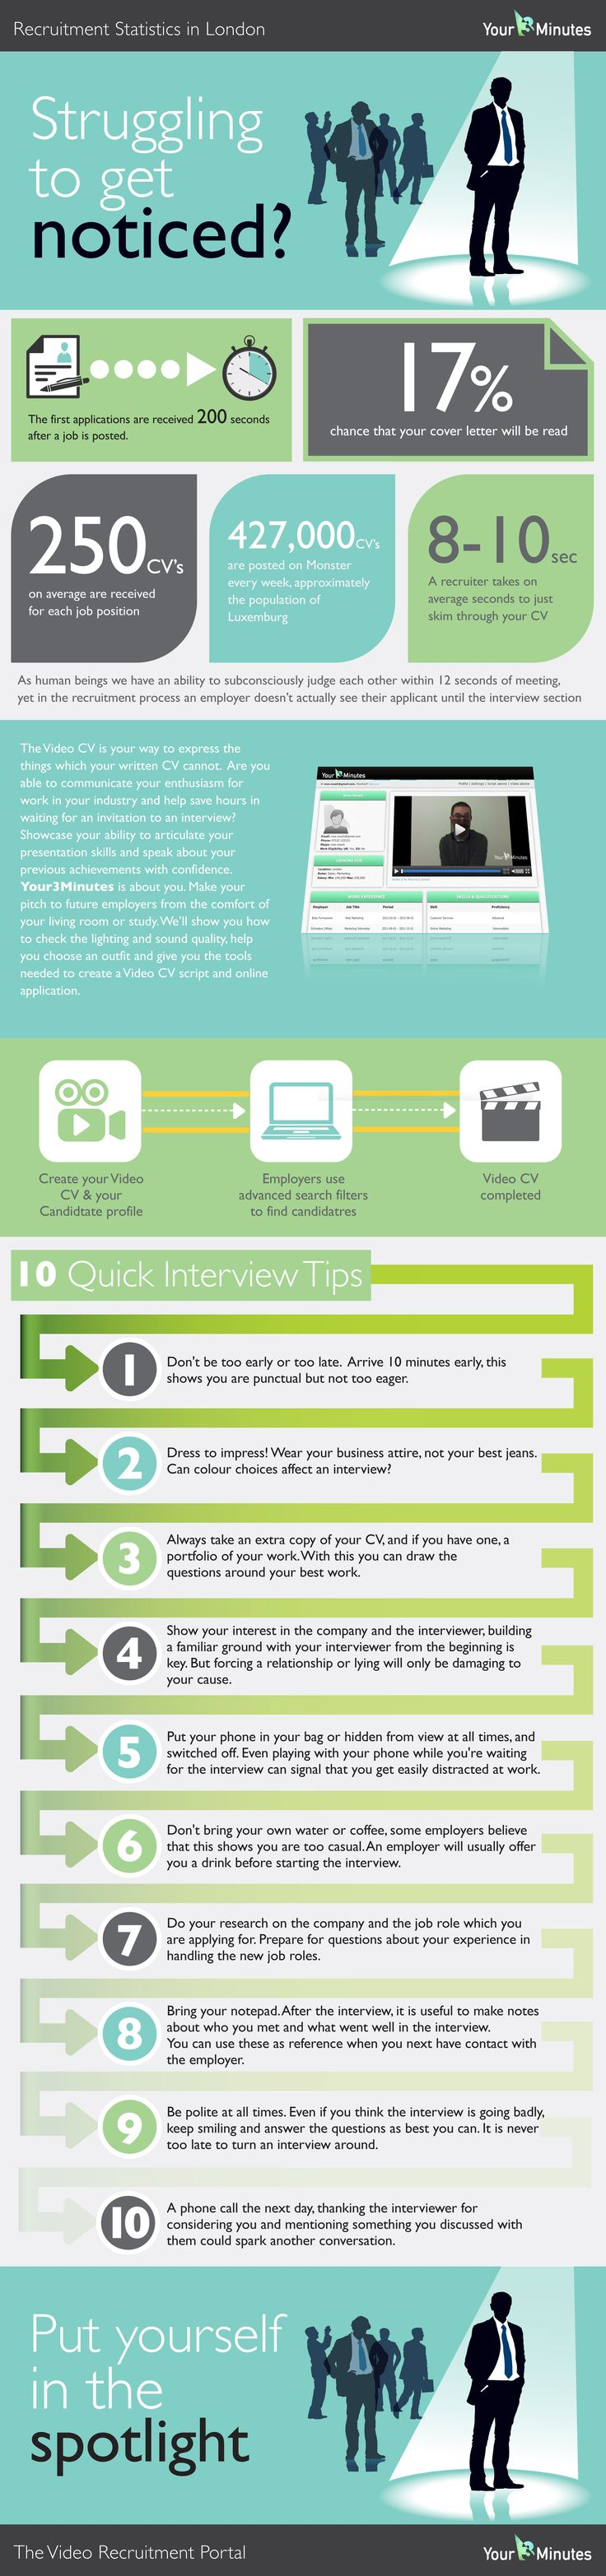 Recruitment Statistics And Top 10 Interview Tips